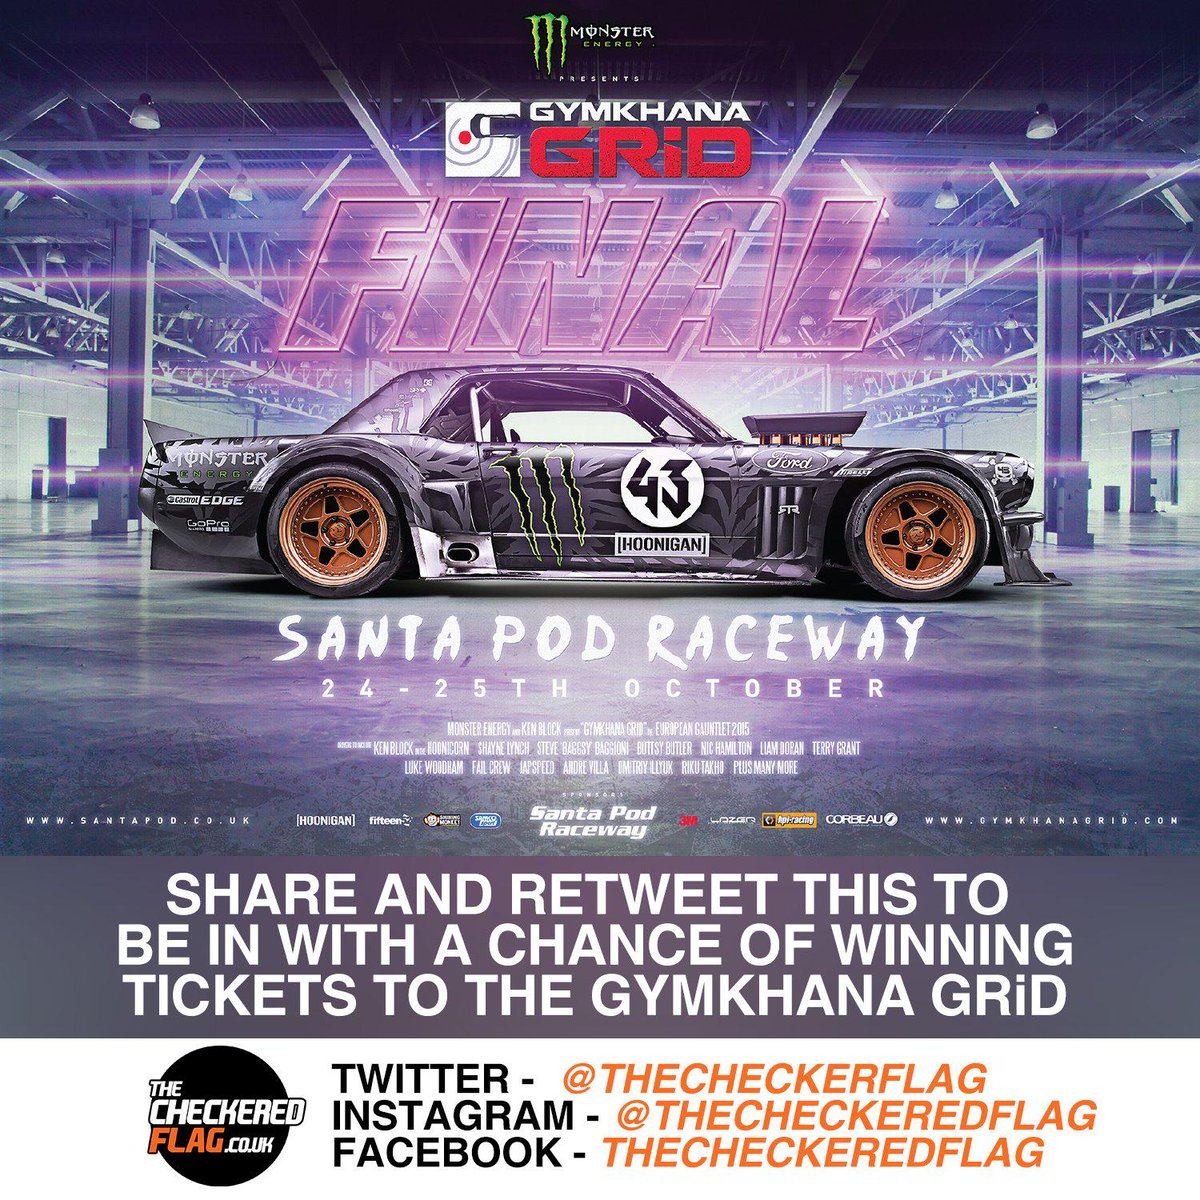 Fancy winning tickets to @GymkhanaGRID Final? Simply RT this or visit http://t.co/EqrQo974UR for more info! http://t.co/0auMwkzYjh